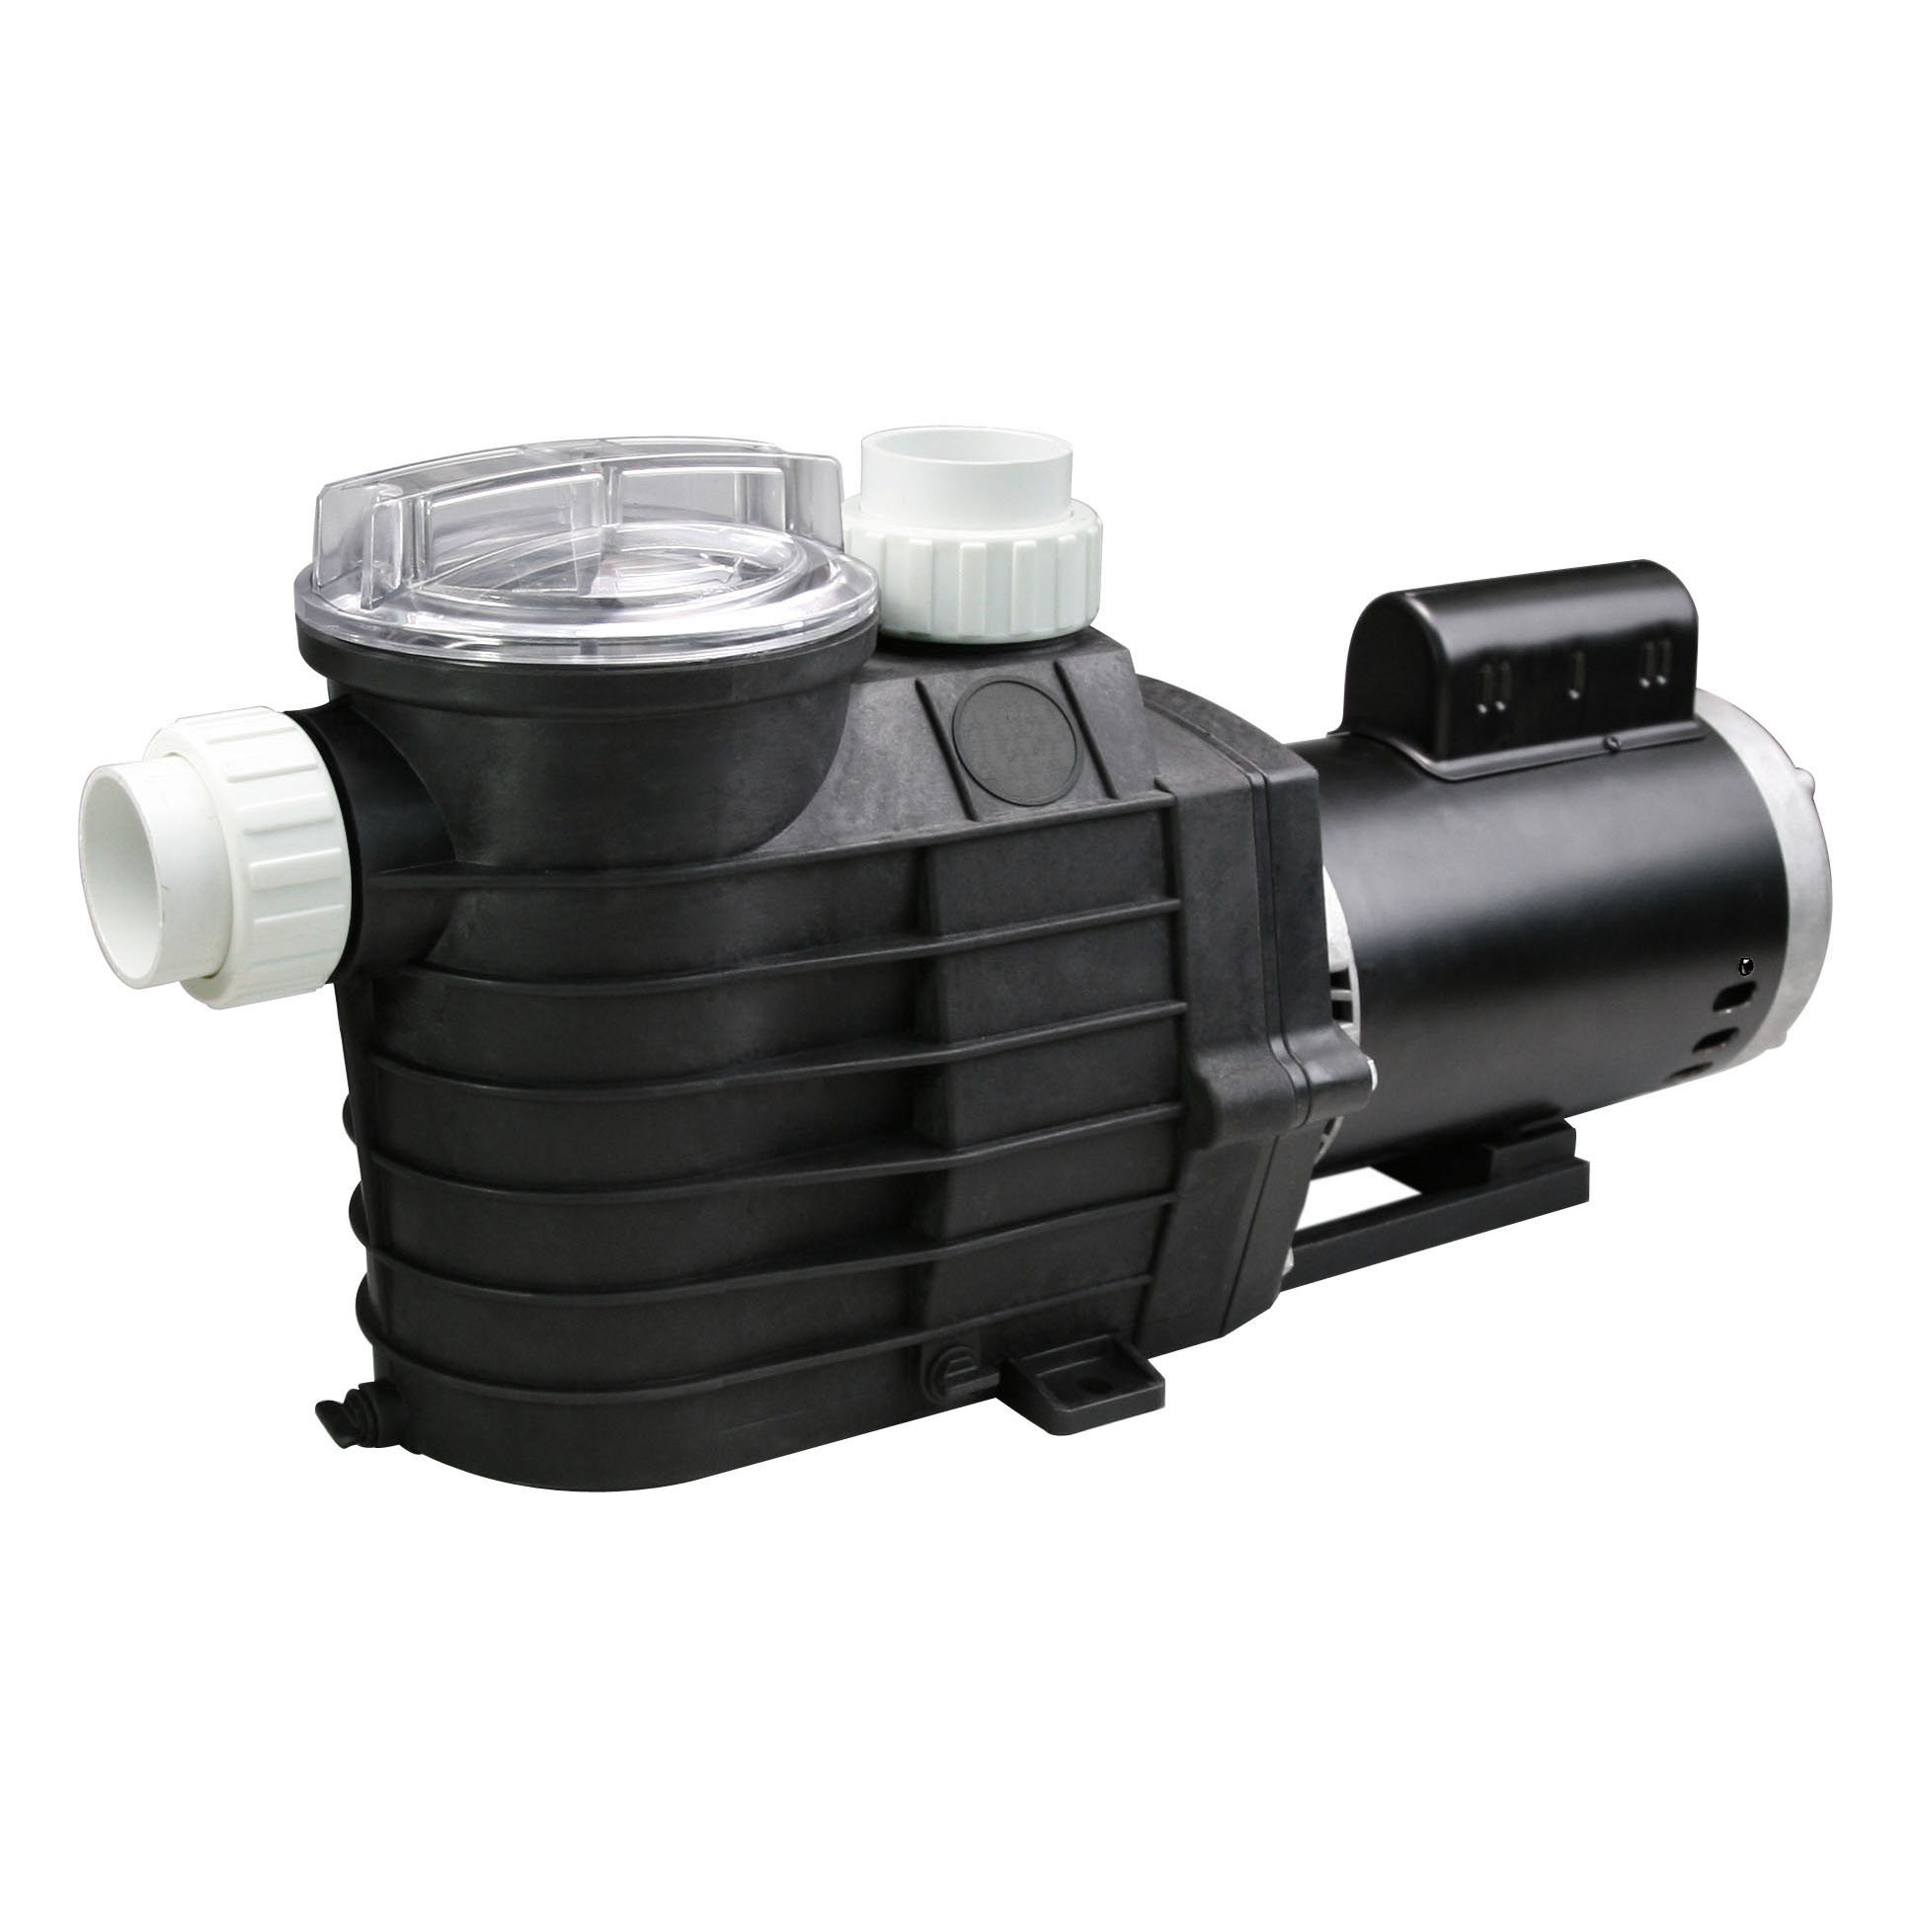 JT 48sup0753ci swimming pool pump filter systems manufacturers for swimming pool-1